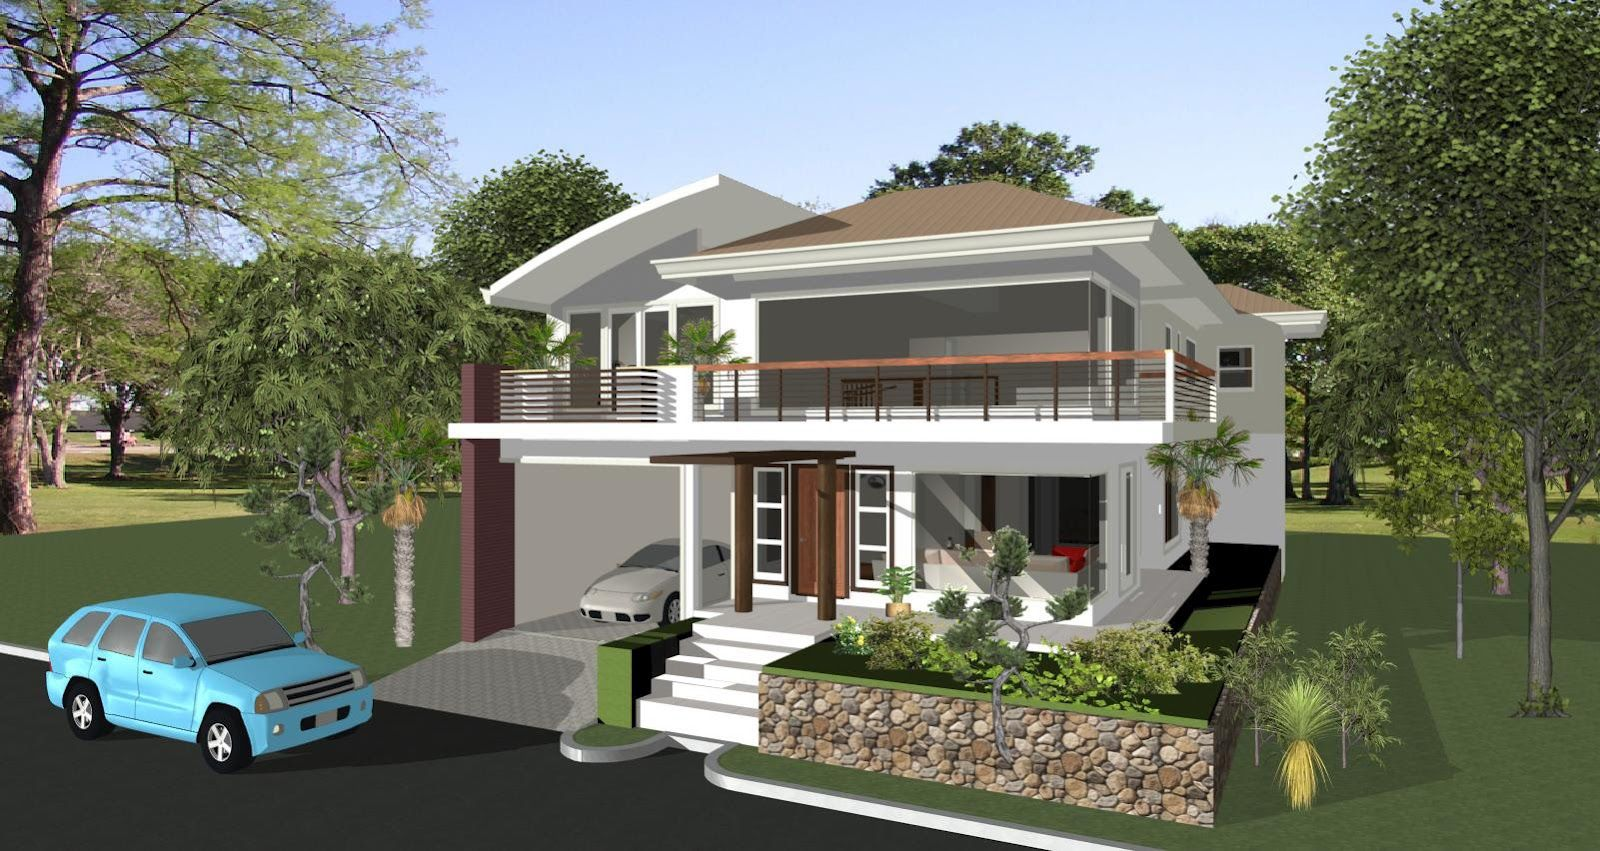 Dream home designs erecre group realty design and for Home construction design